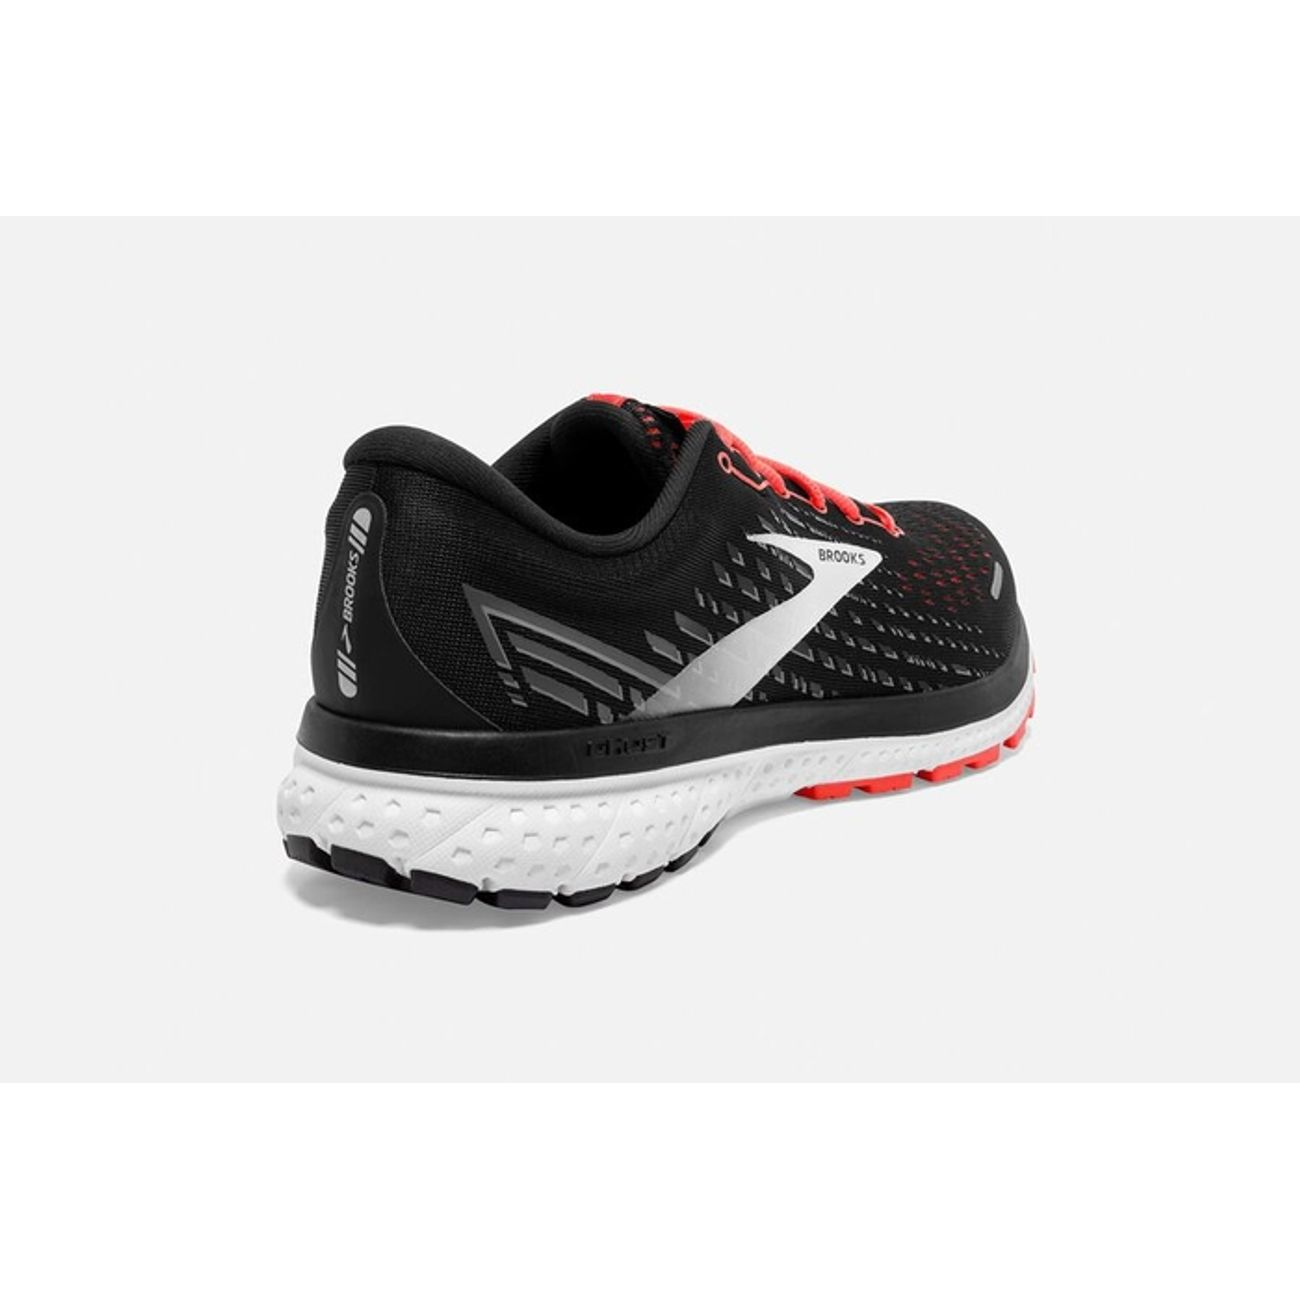 CHAUSSURES BASSES running femme BROOKS GHOST 13 W